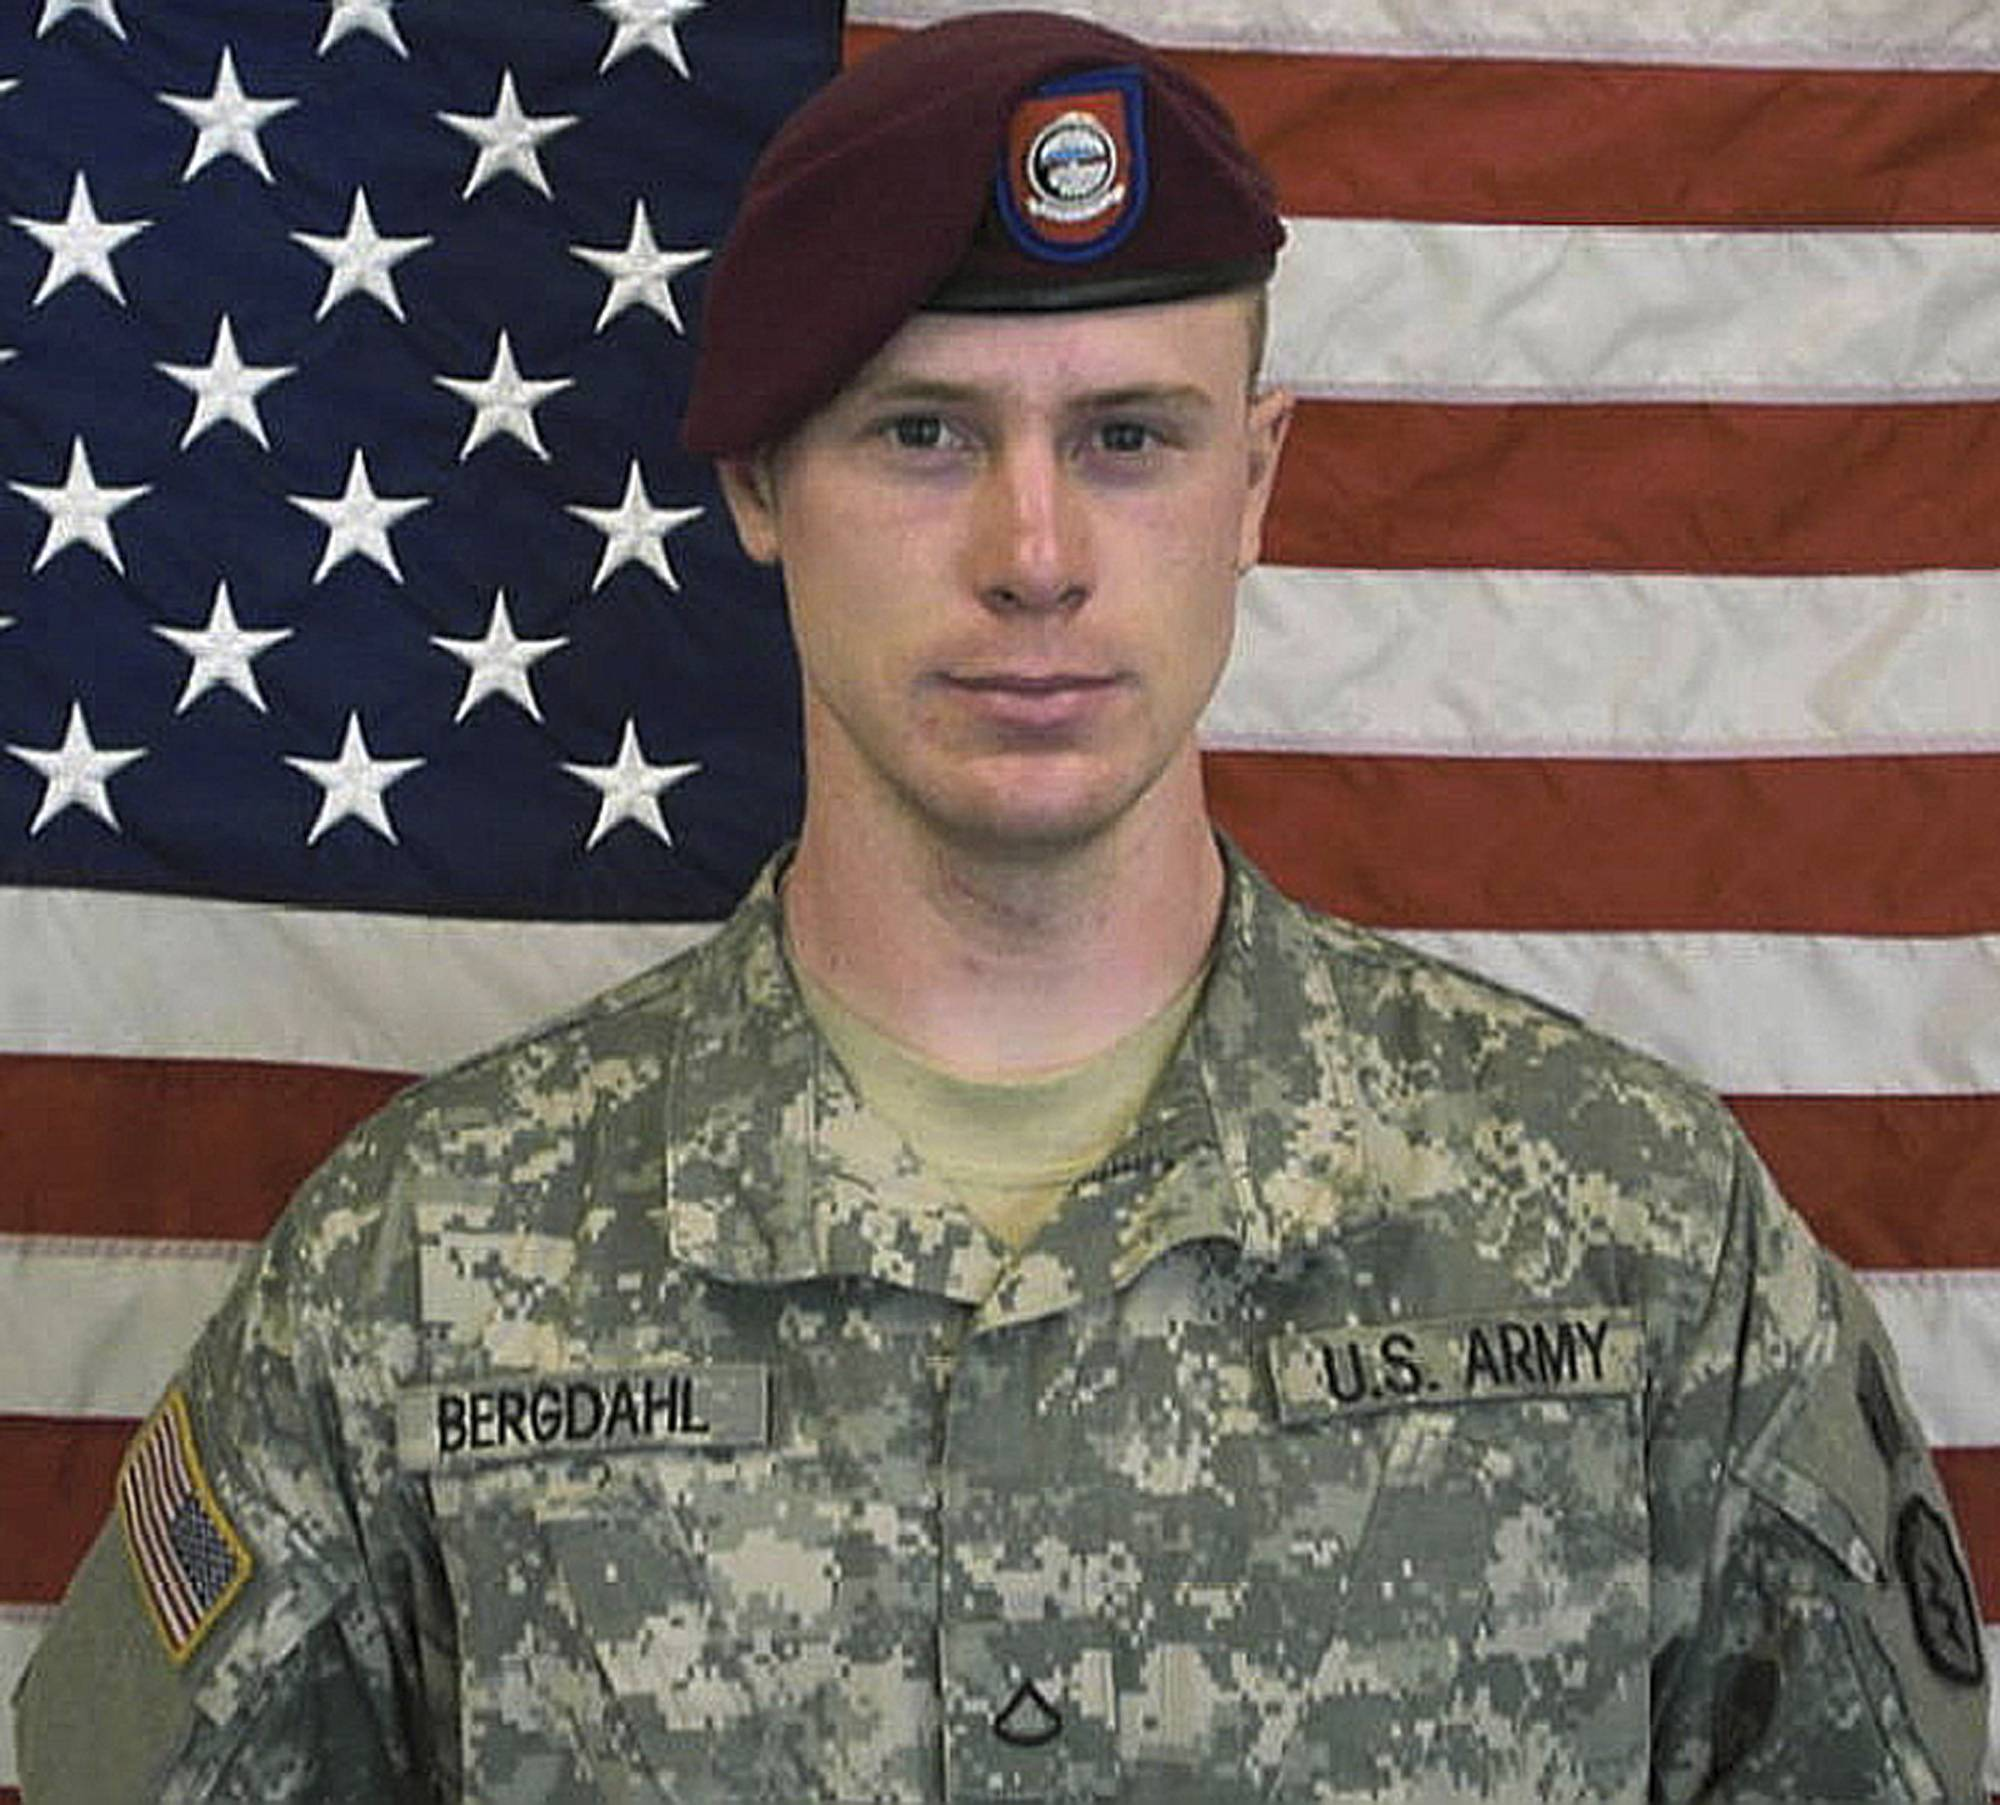 Right up until the moment Army Sgt. Bowe Bergdahl was freed, U.S. officials weren't sure the Taliban would really release the only American soldier held captive in Afghanistan in exchange for high-level militants detained at Guantanamo Bay.